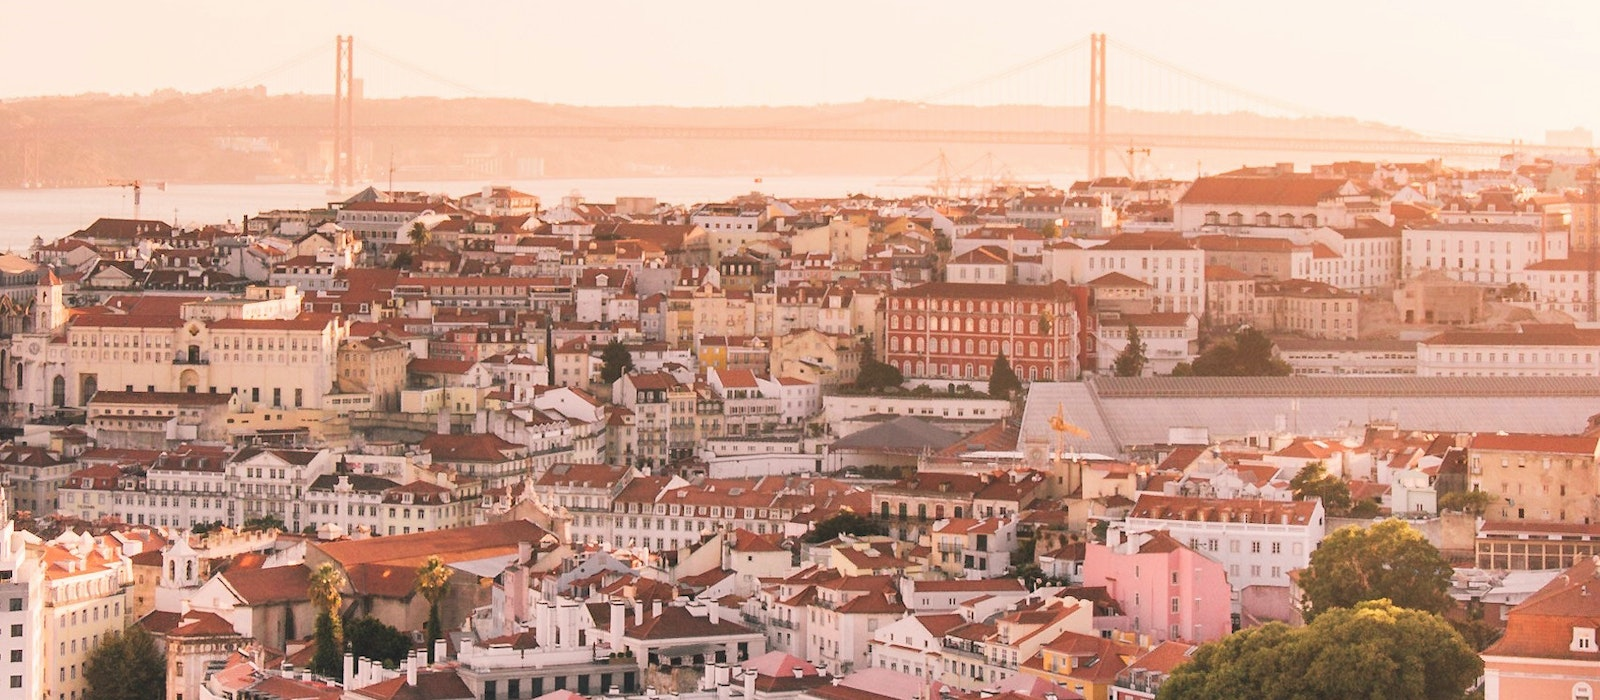 This summer there are 91 weekly flights from the United States to Lisbon and Porto, double the number in 2017.